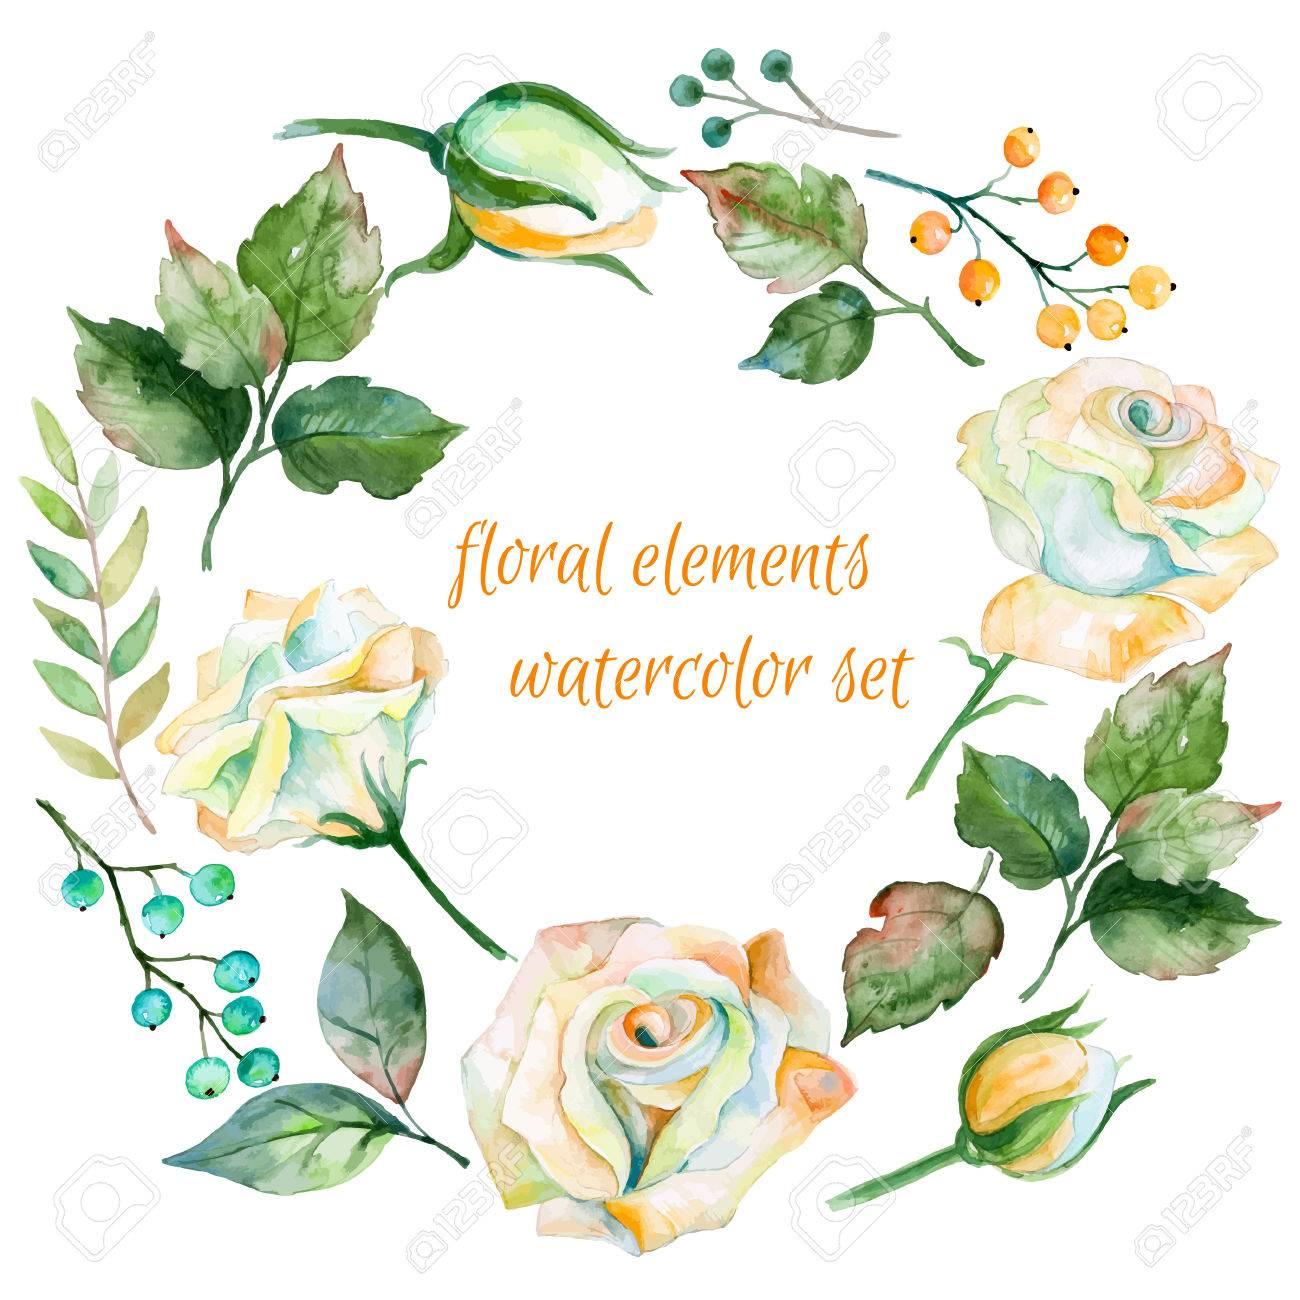 Set of different white flowers berries and leaves for design set of different white flowers berries and leaves for design watercolor roses and leaves mightylinksfo